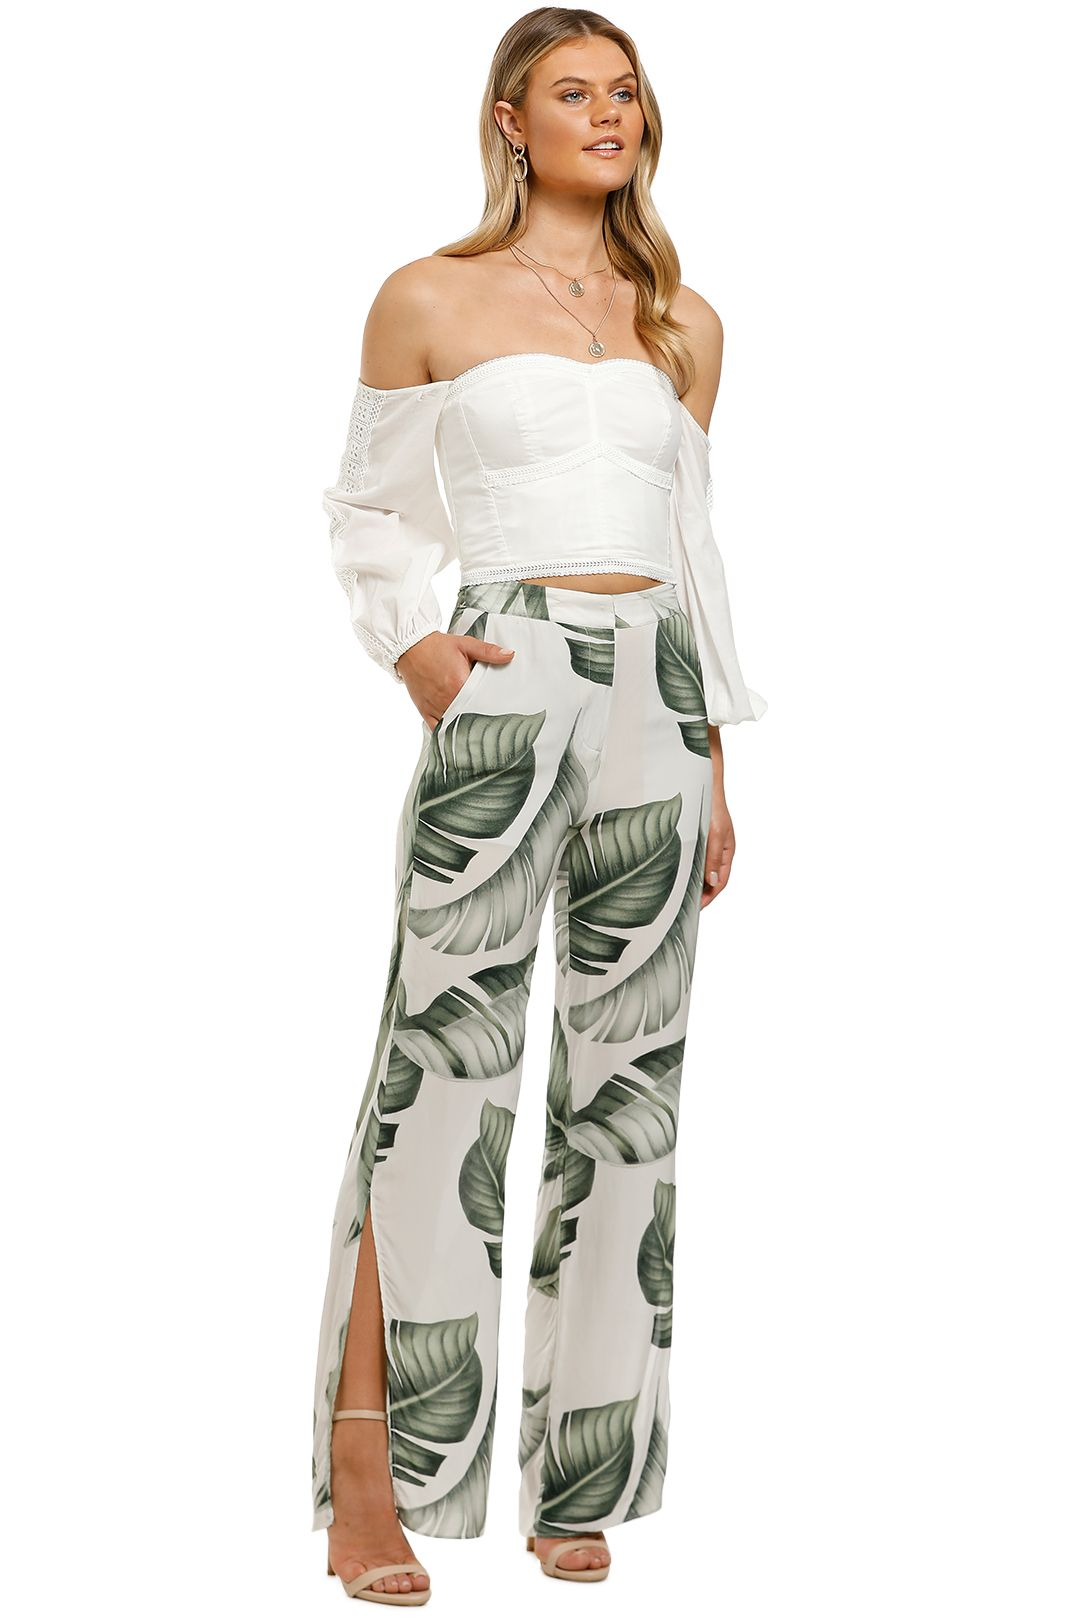 Saints-the-Label-Malvern-Pant-Print-Side